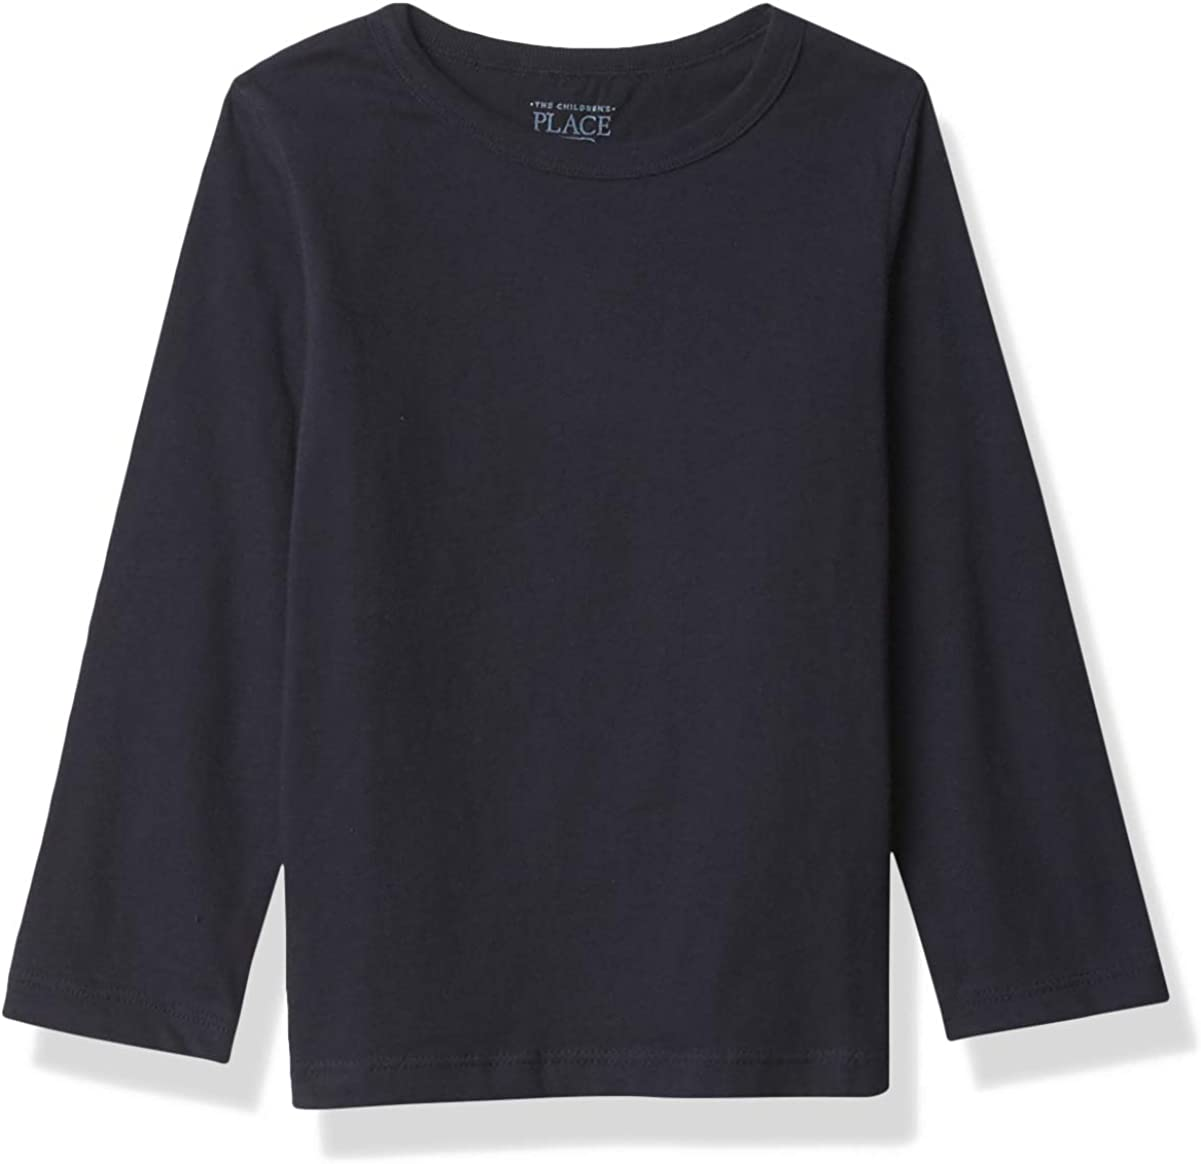 The Children's Place Boys' Baby and Toddler Uniform Basic Layering Tee